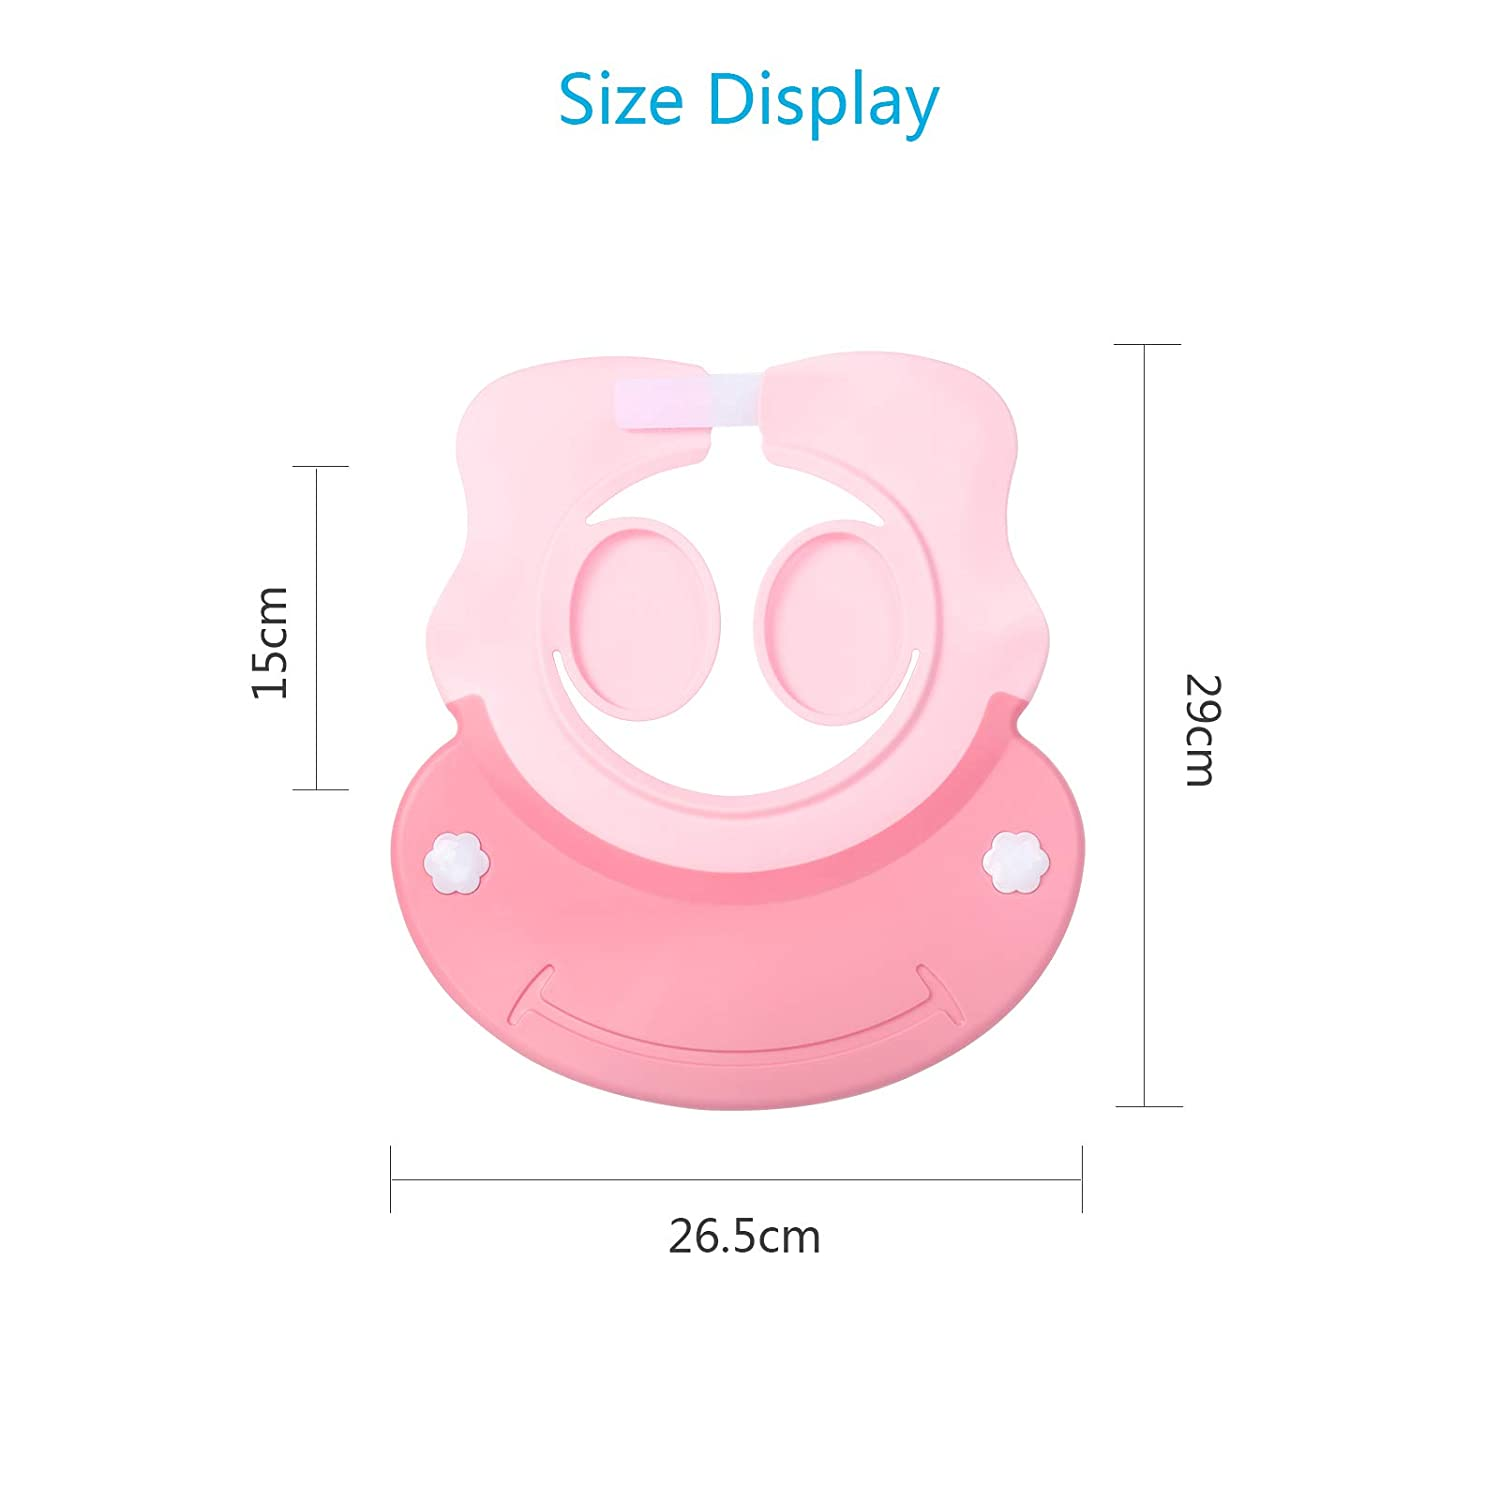 KATOOM Baby Shower Cap Shampoo Shower Cap Bathing Protector Wash Hair Shield Adjustable Visor Hat with Ear Protection for Toddler Kids Children Blue